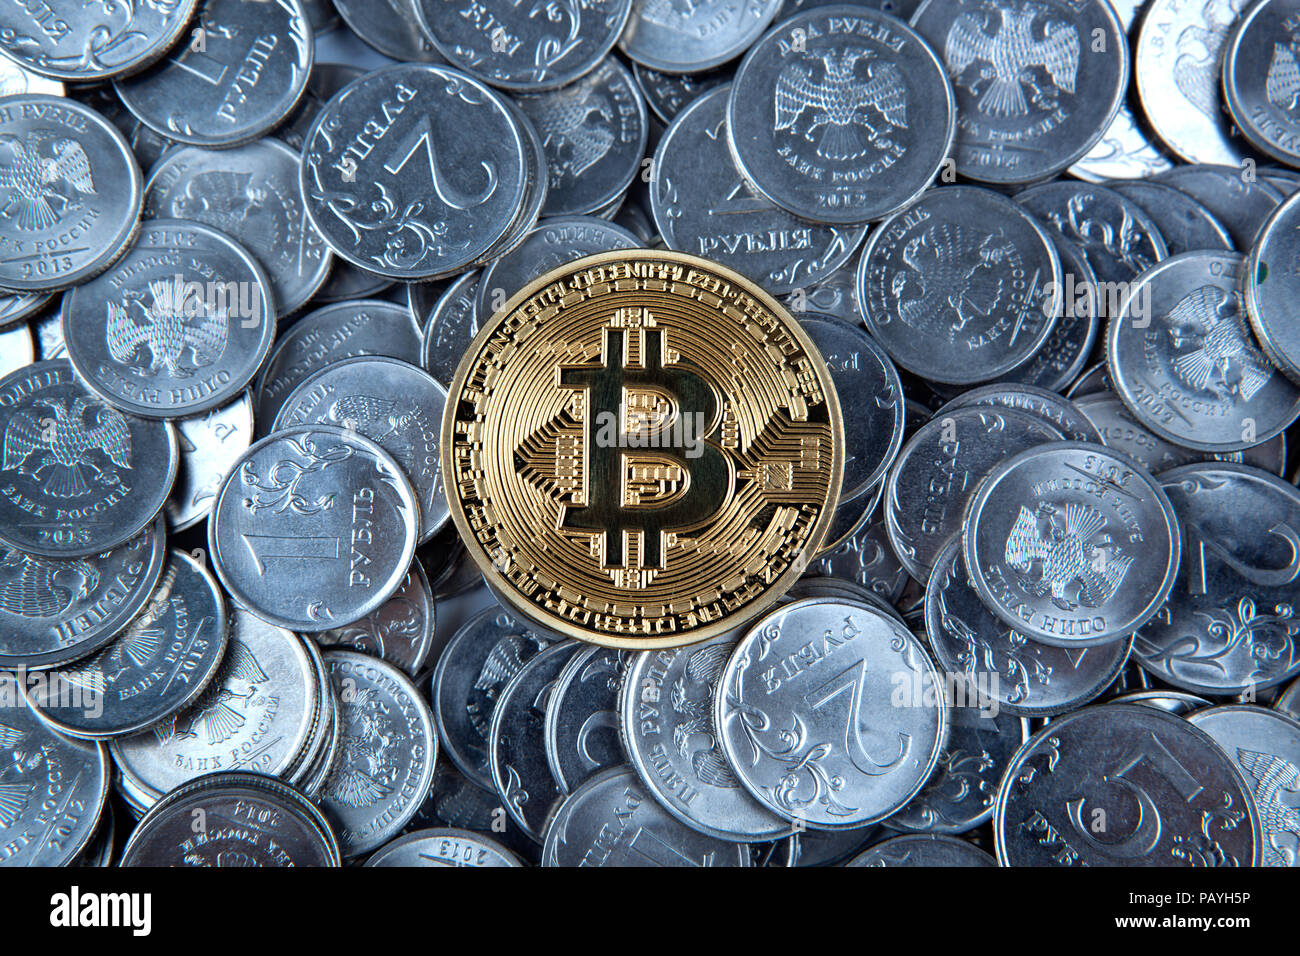 gold coin bitcoin on russian ruble coins close up - Stock Image